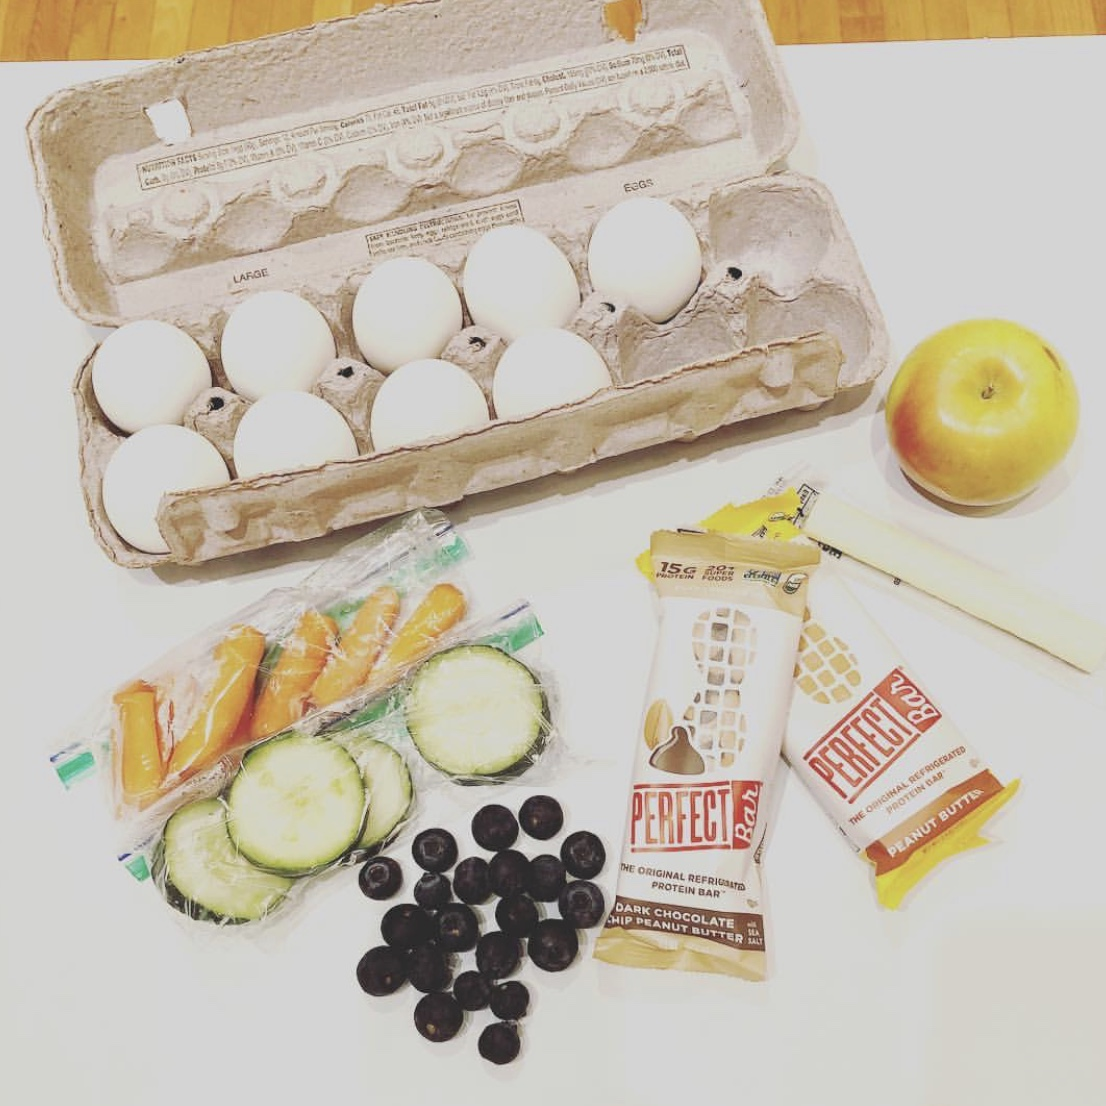 Some of Amy's go-to snacks include hardboiled eggs, Perfect Bars, carrots/cucumbers, cheese sticks and blueberries/apples.